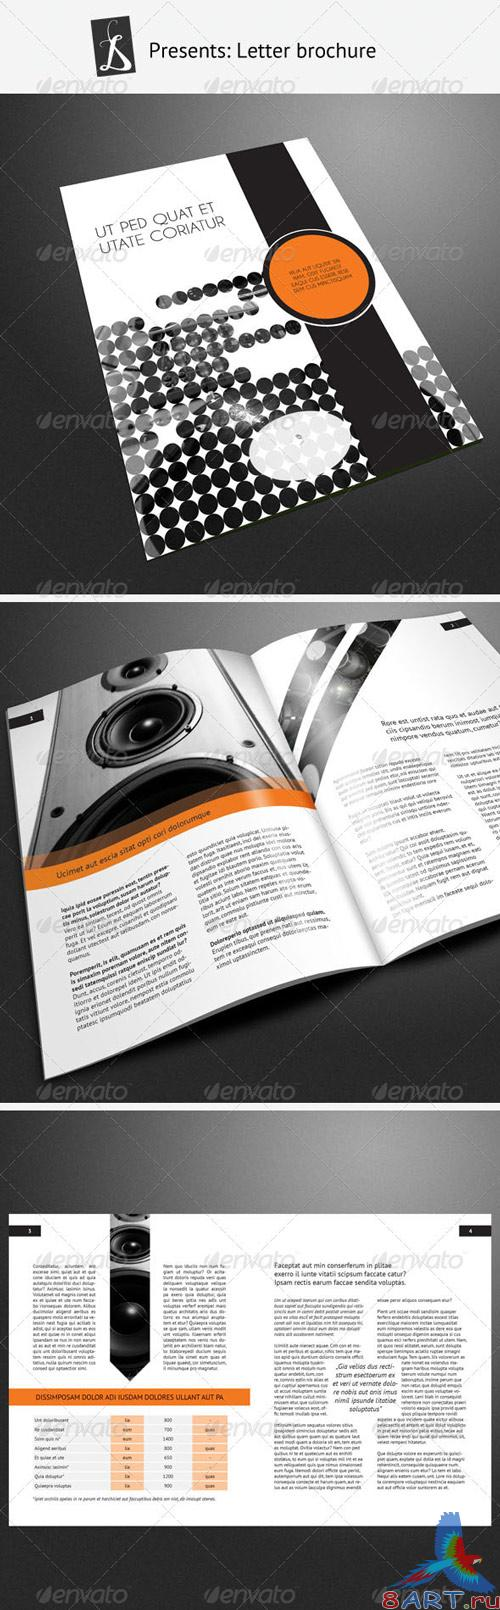 Corporate Brochure 9 - GraphicRiver